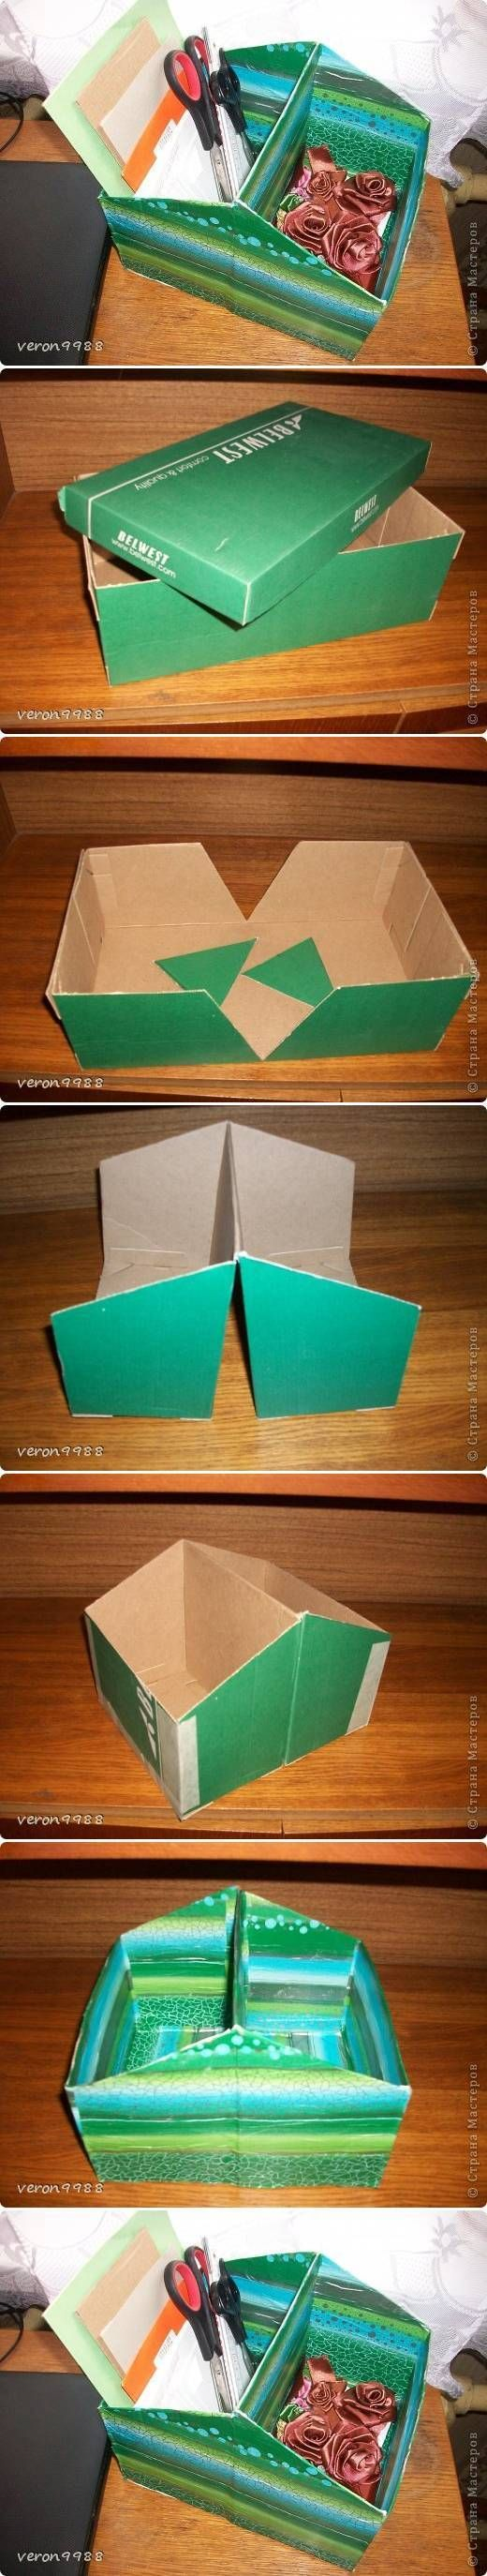 How To Decorate Shoe Boxes For Storage Diy Schuhkarton Organizer Diy Projects  Usefuldiy